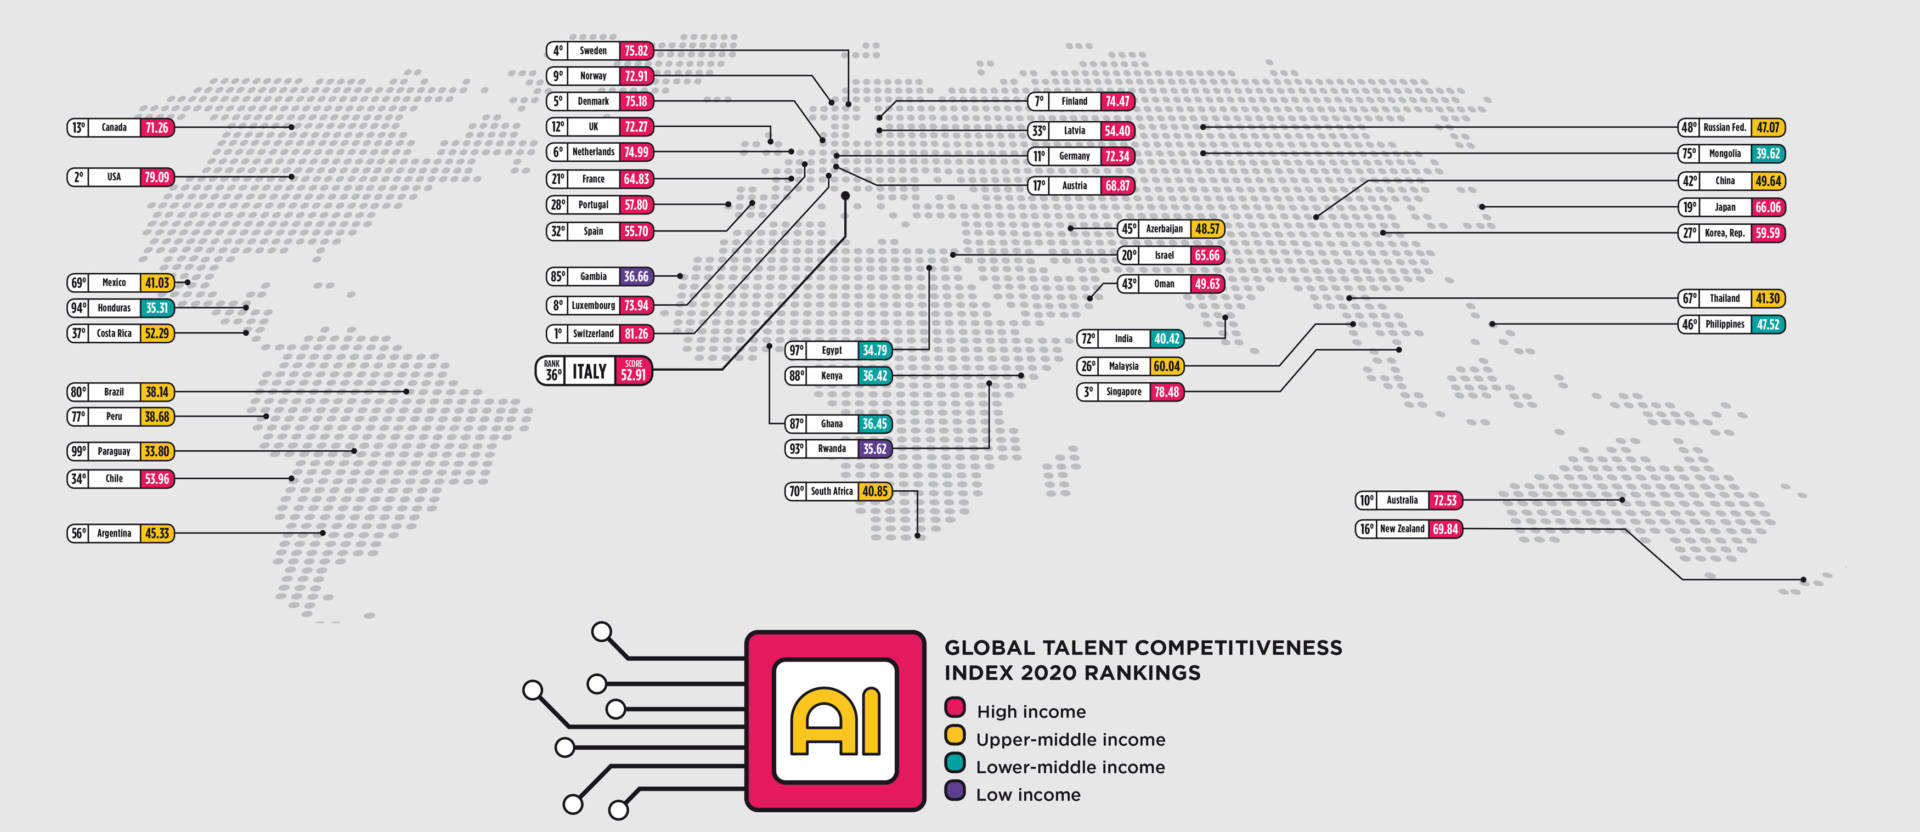 Global Talent Competitiveness Index